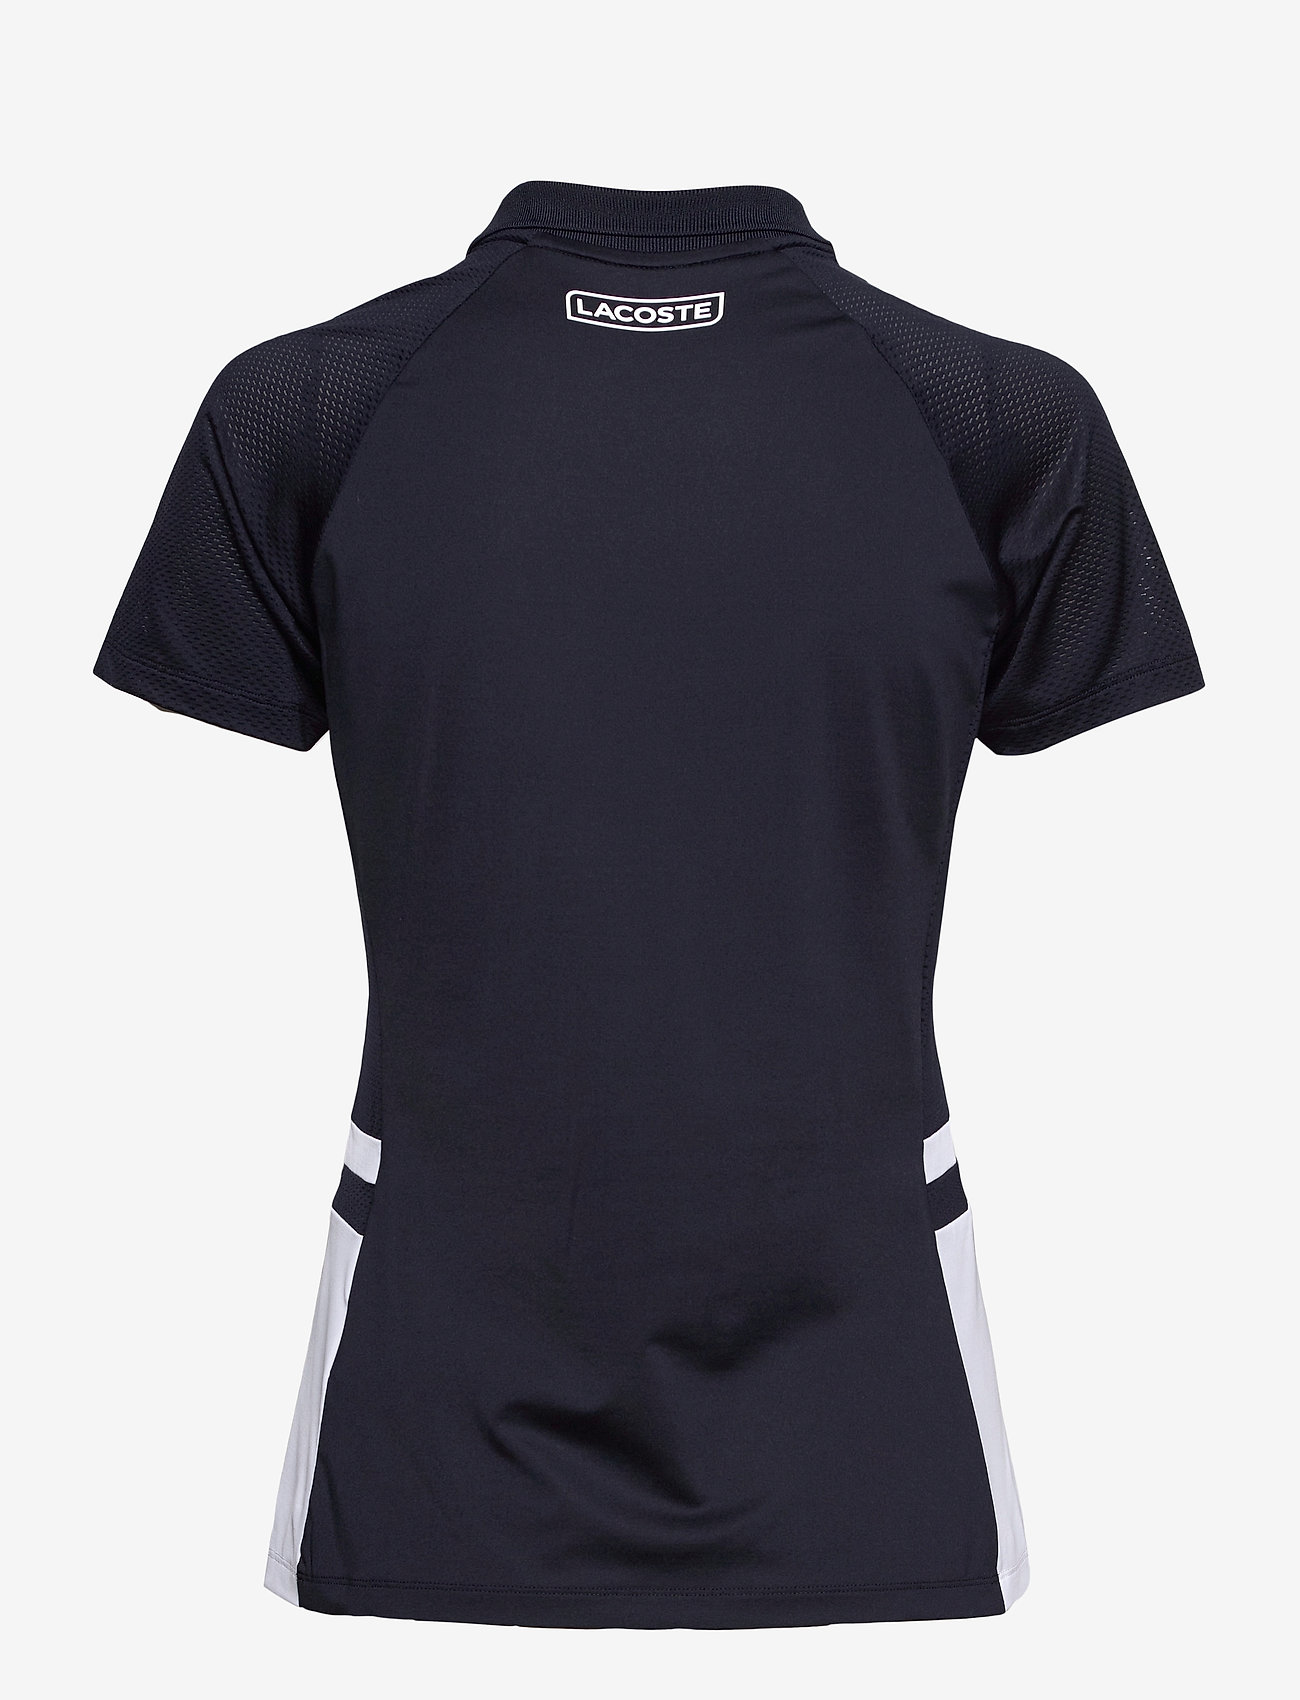 Lacoste - Women s S/S polo - polo's - navy blue/white-navy blue - 1